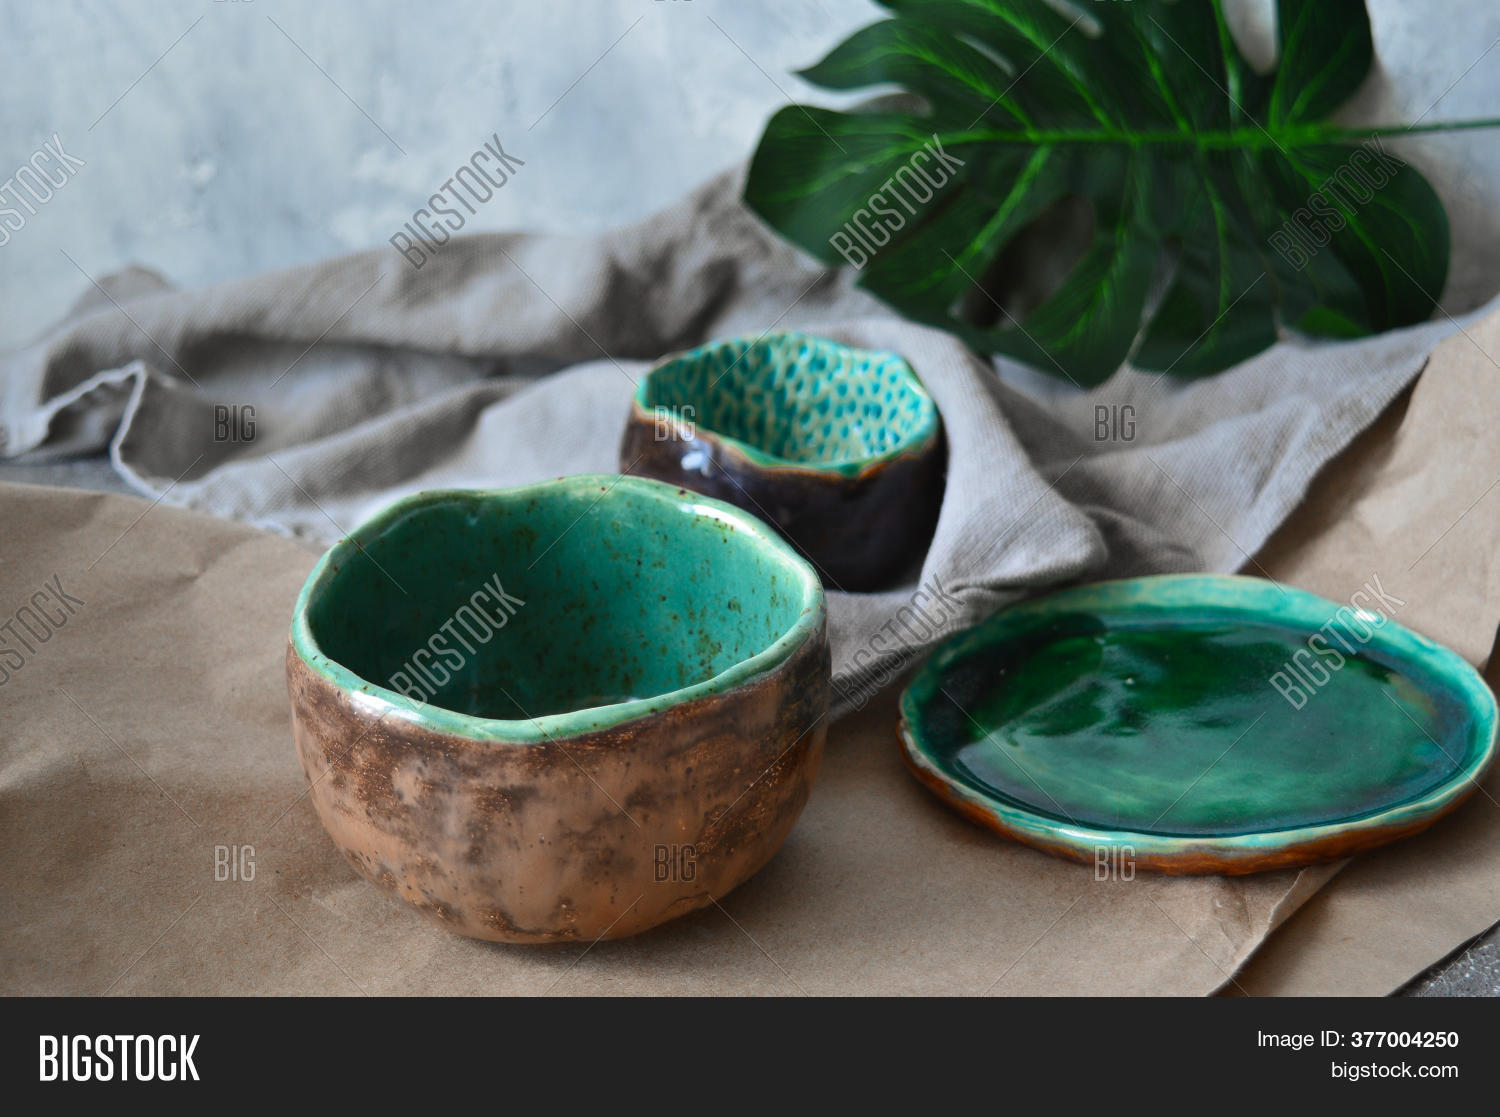 Clay Plates Handmade Image Photo Free Trial Bigstock